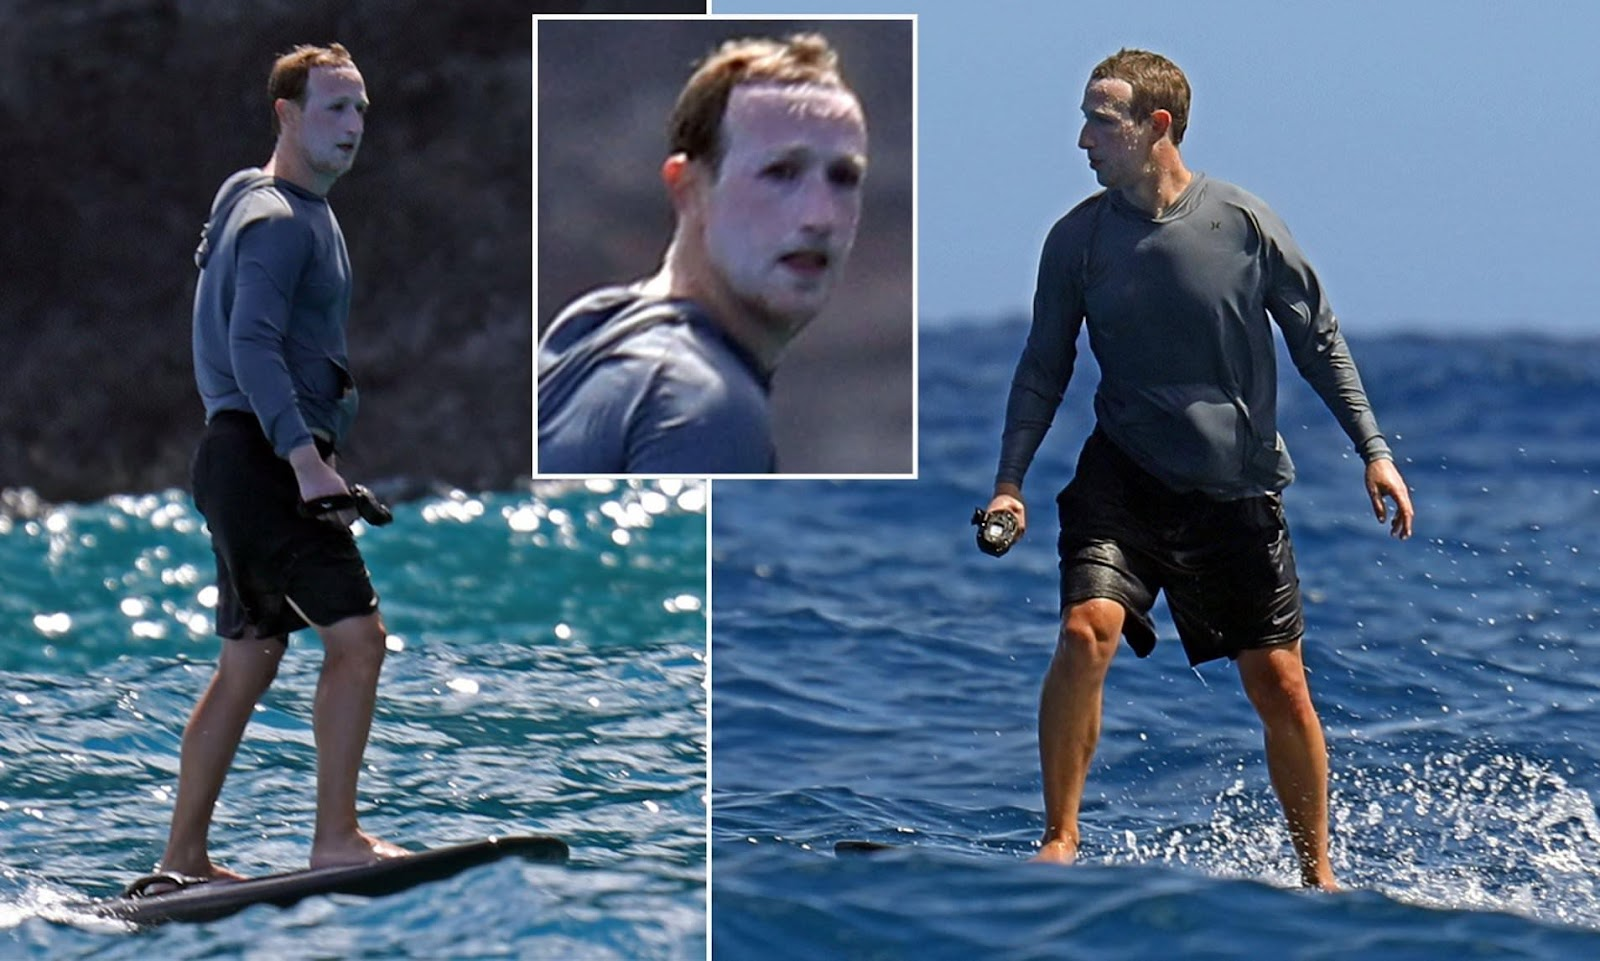 Mark Zuckerberg covered in sunscreen as he surfs in Hawaii | Daily ...